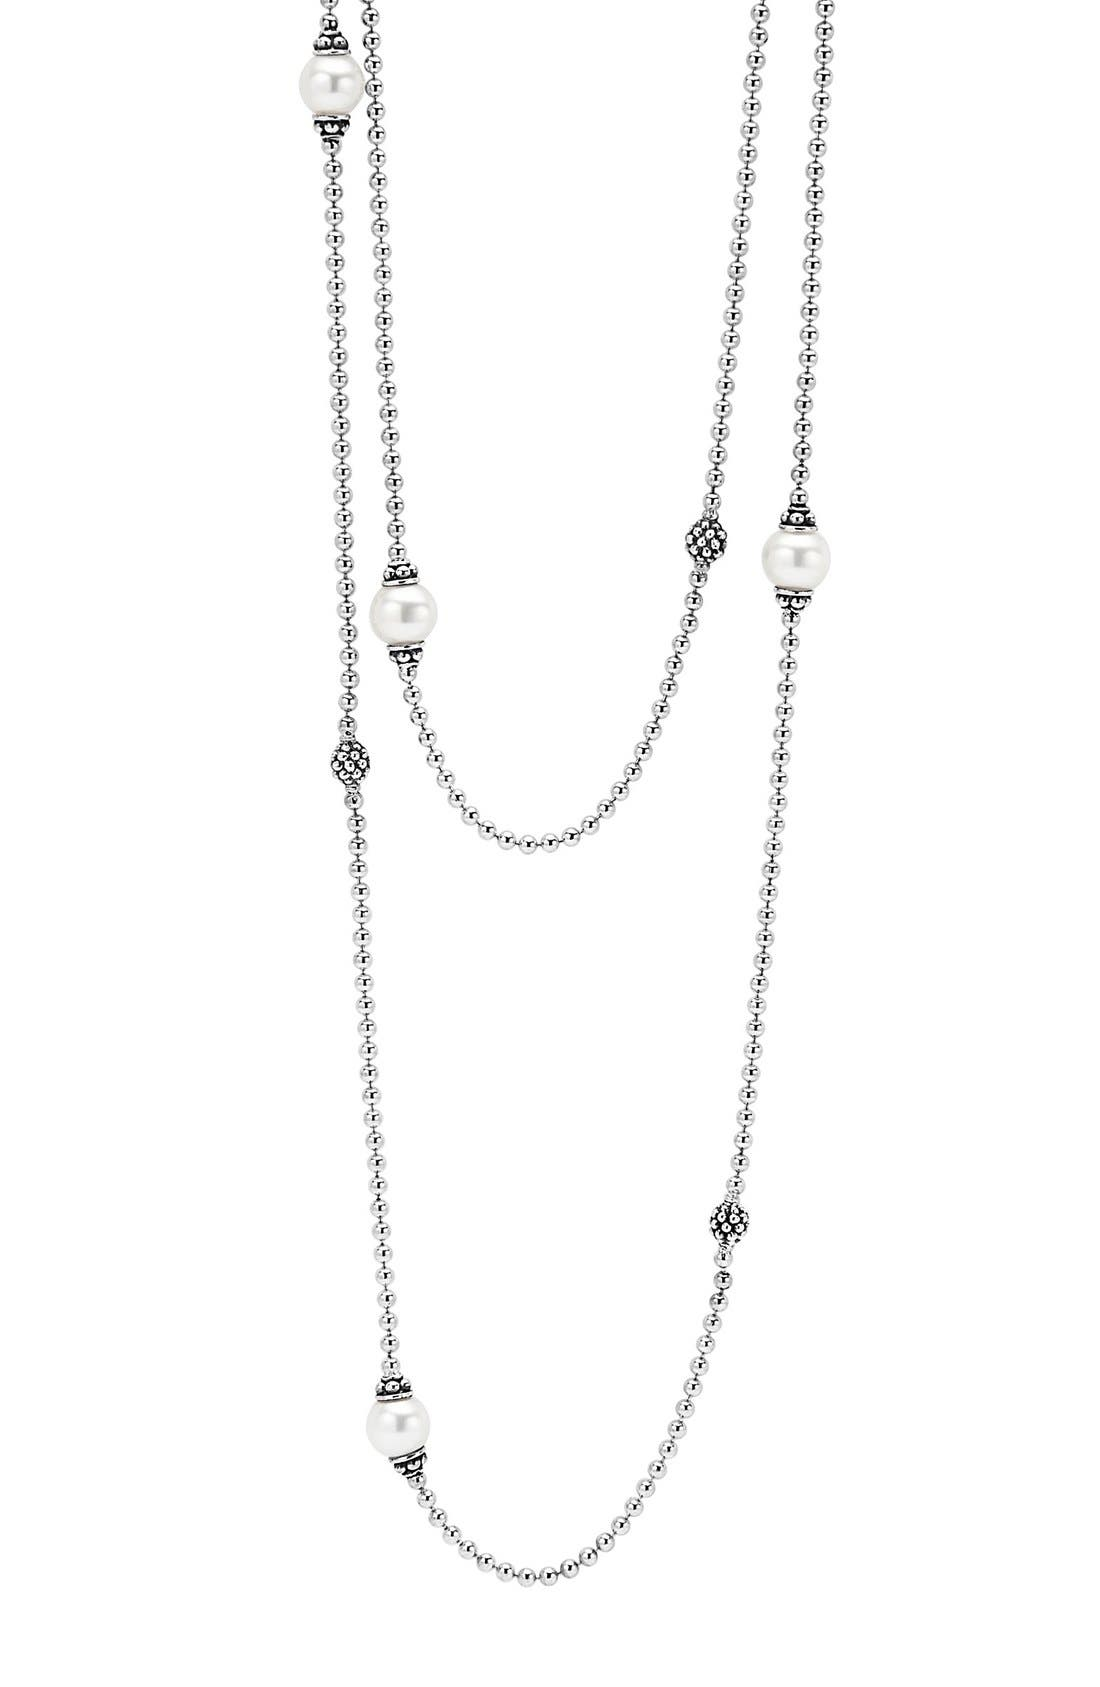 Main Image - LAGOS 'Luna' Double Strand Pearl Station Necklace